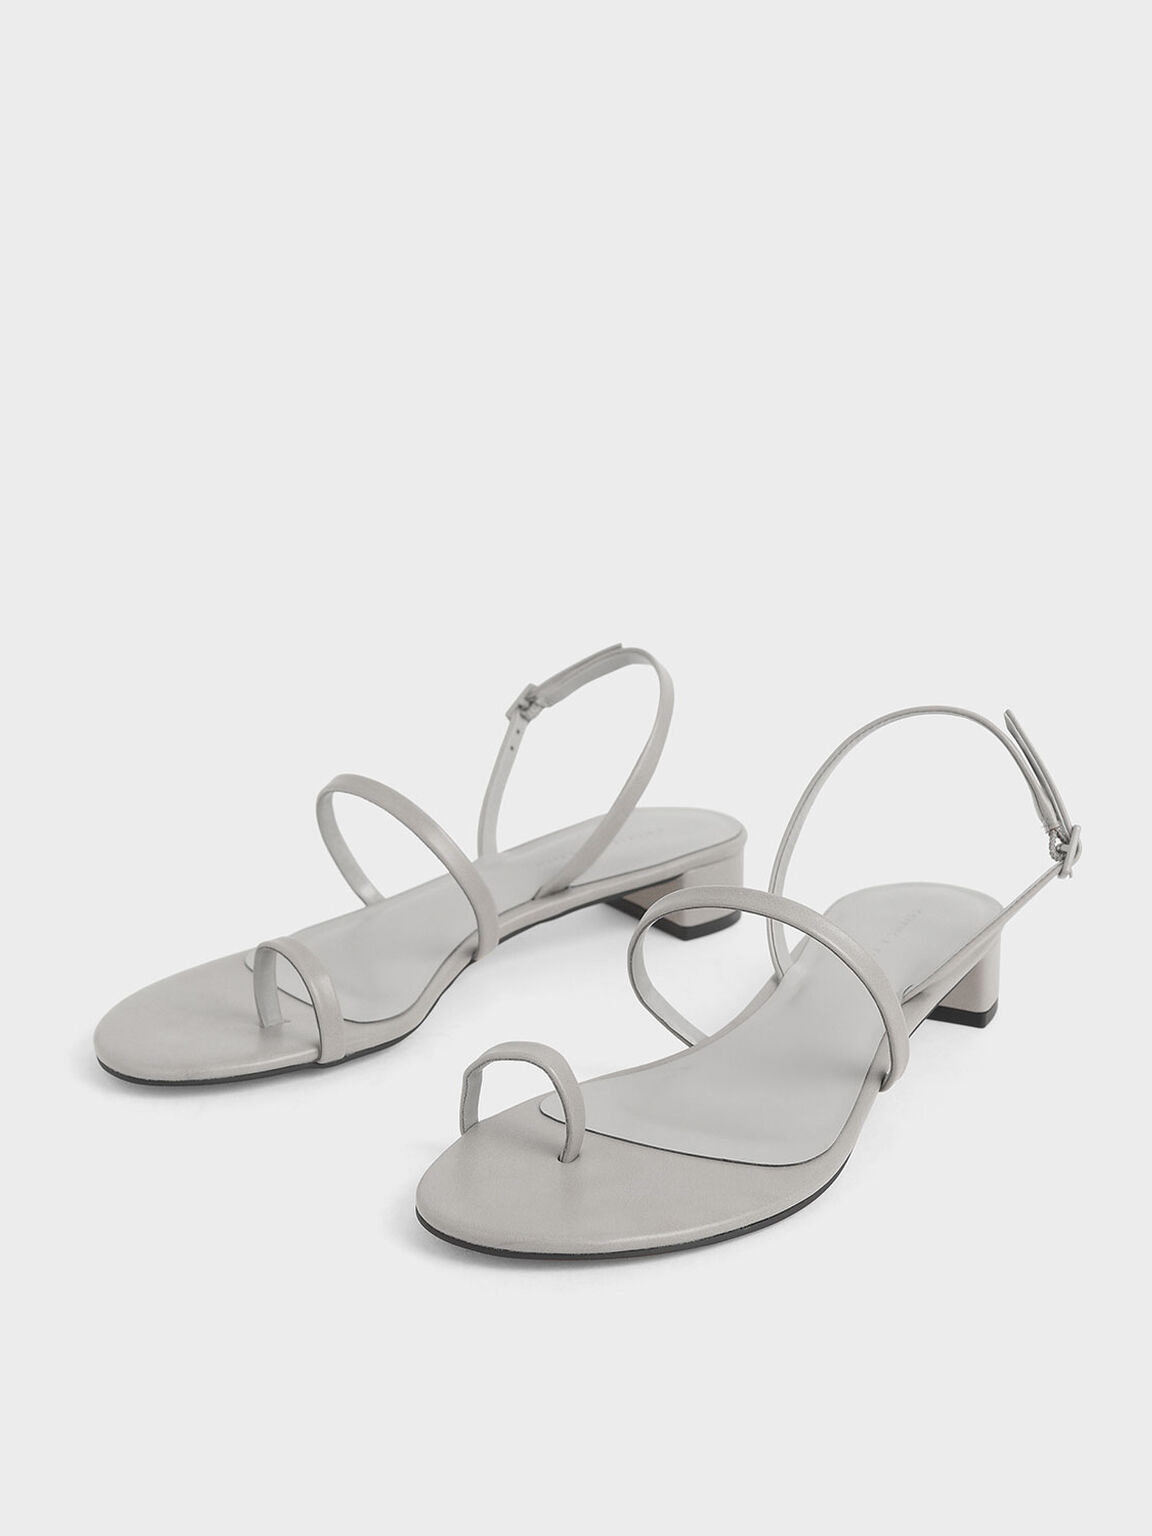 Toe Loop Sandals, Light Grey, hi-res